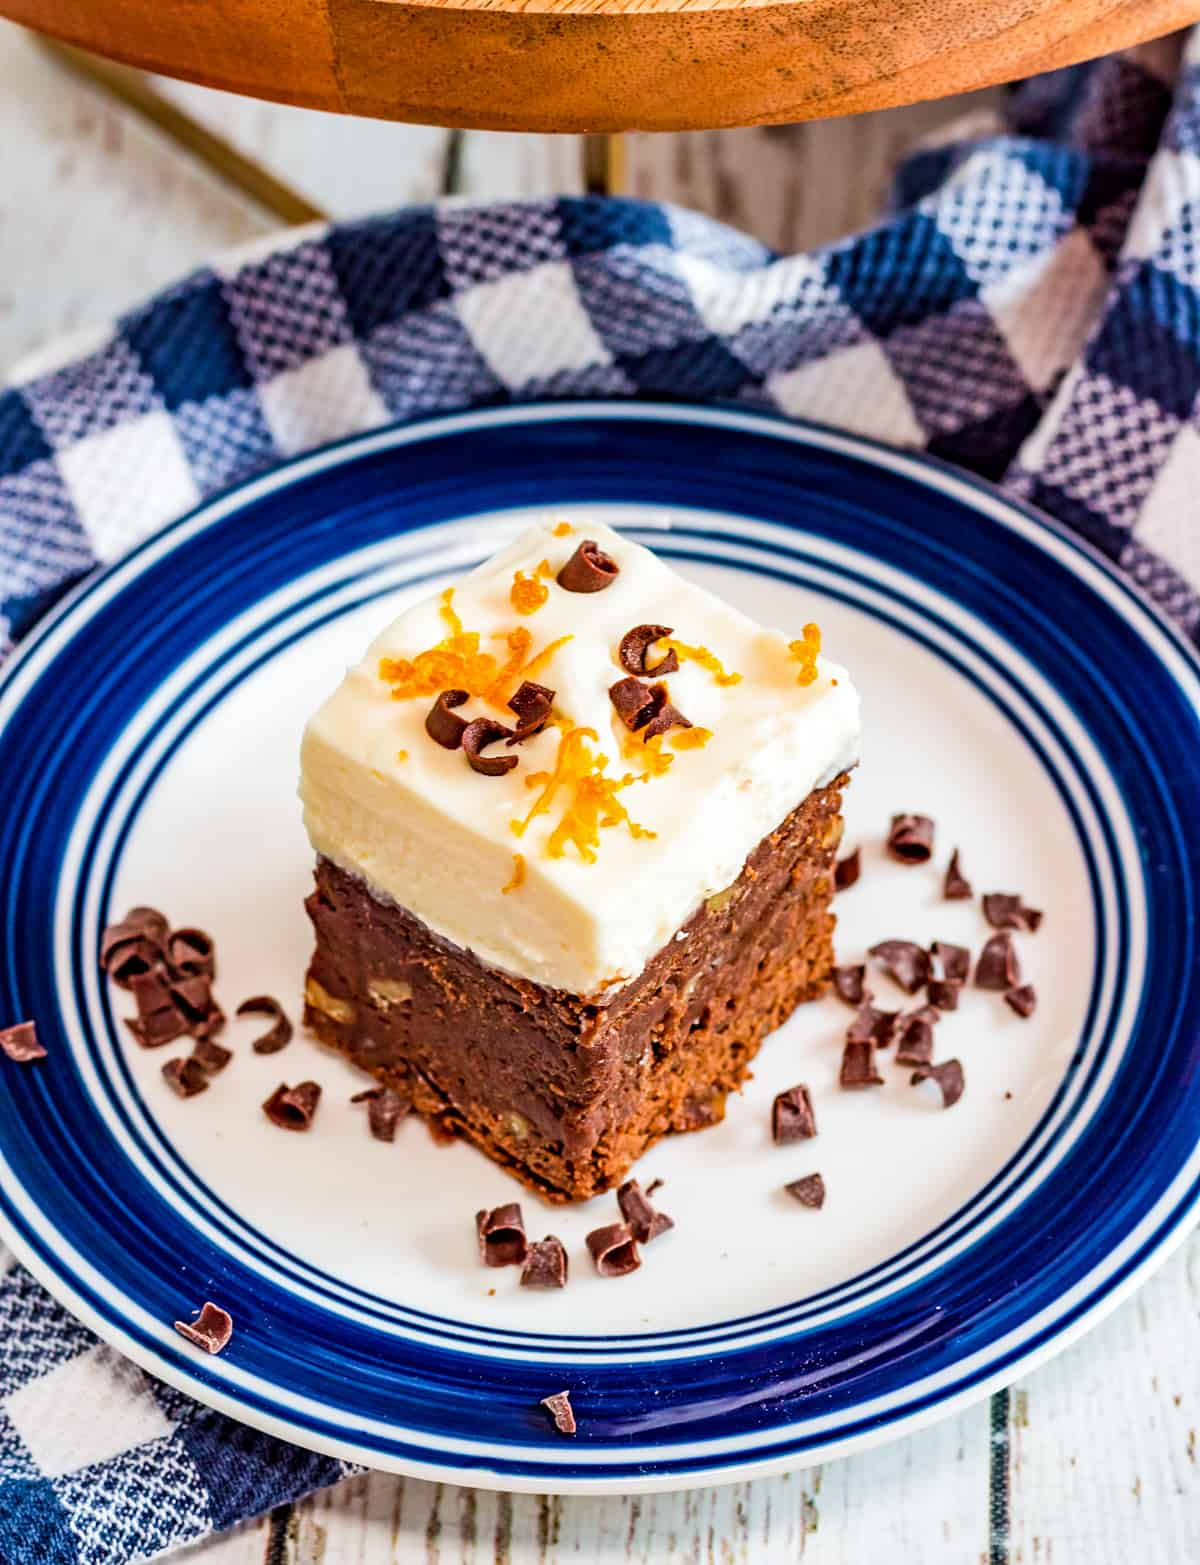 Overhead of Chocolate Orange Brownie on plate with chocolate curls